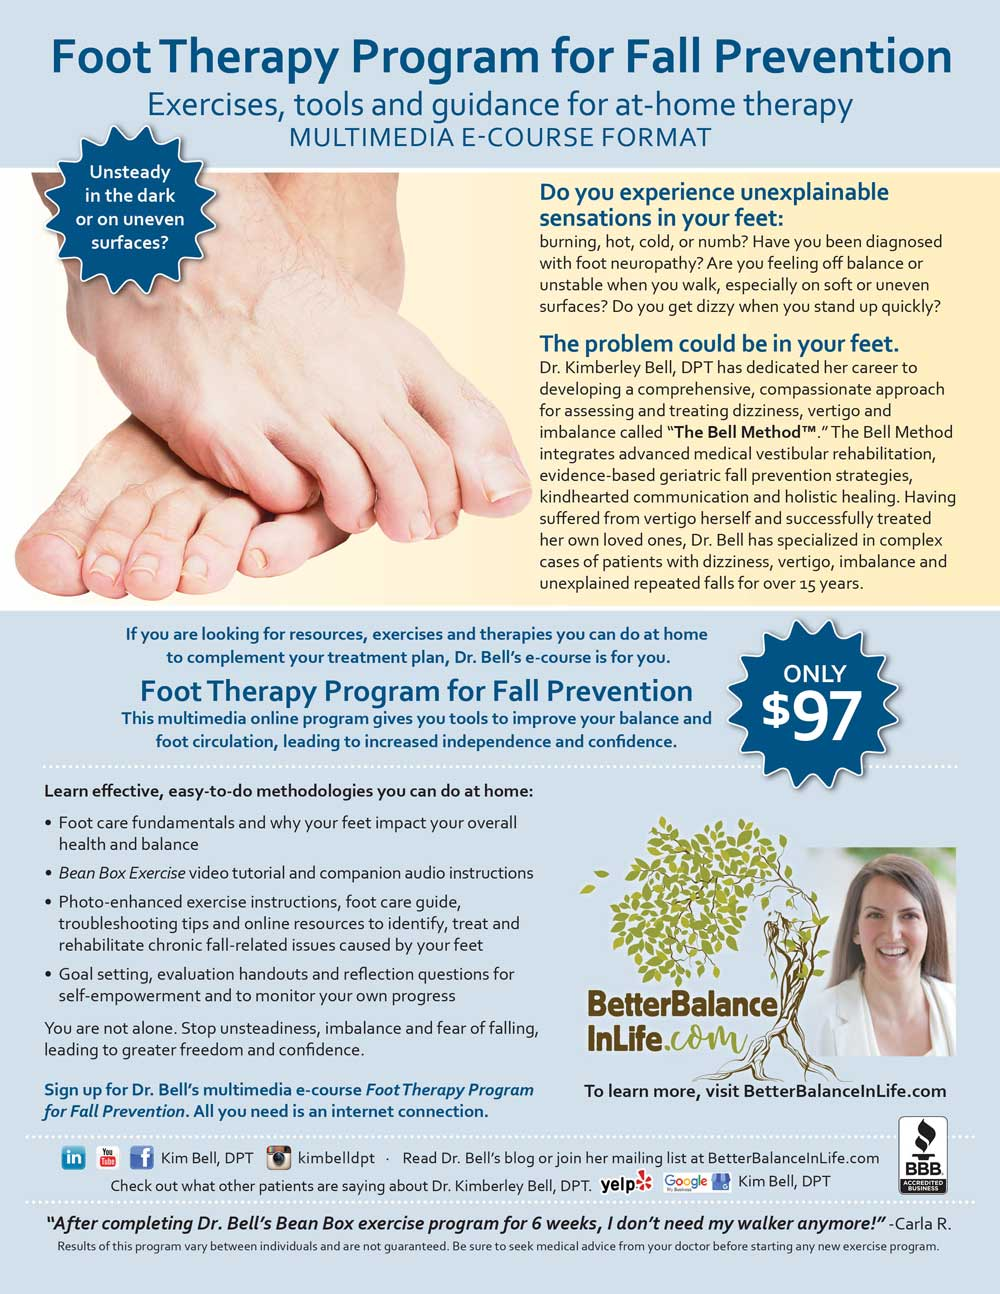 Dr. Bell's Foot Therapy Program for Fall Prevention